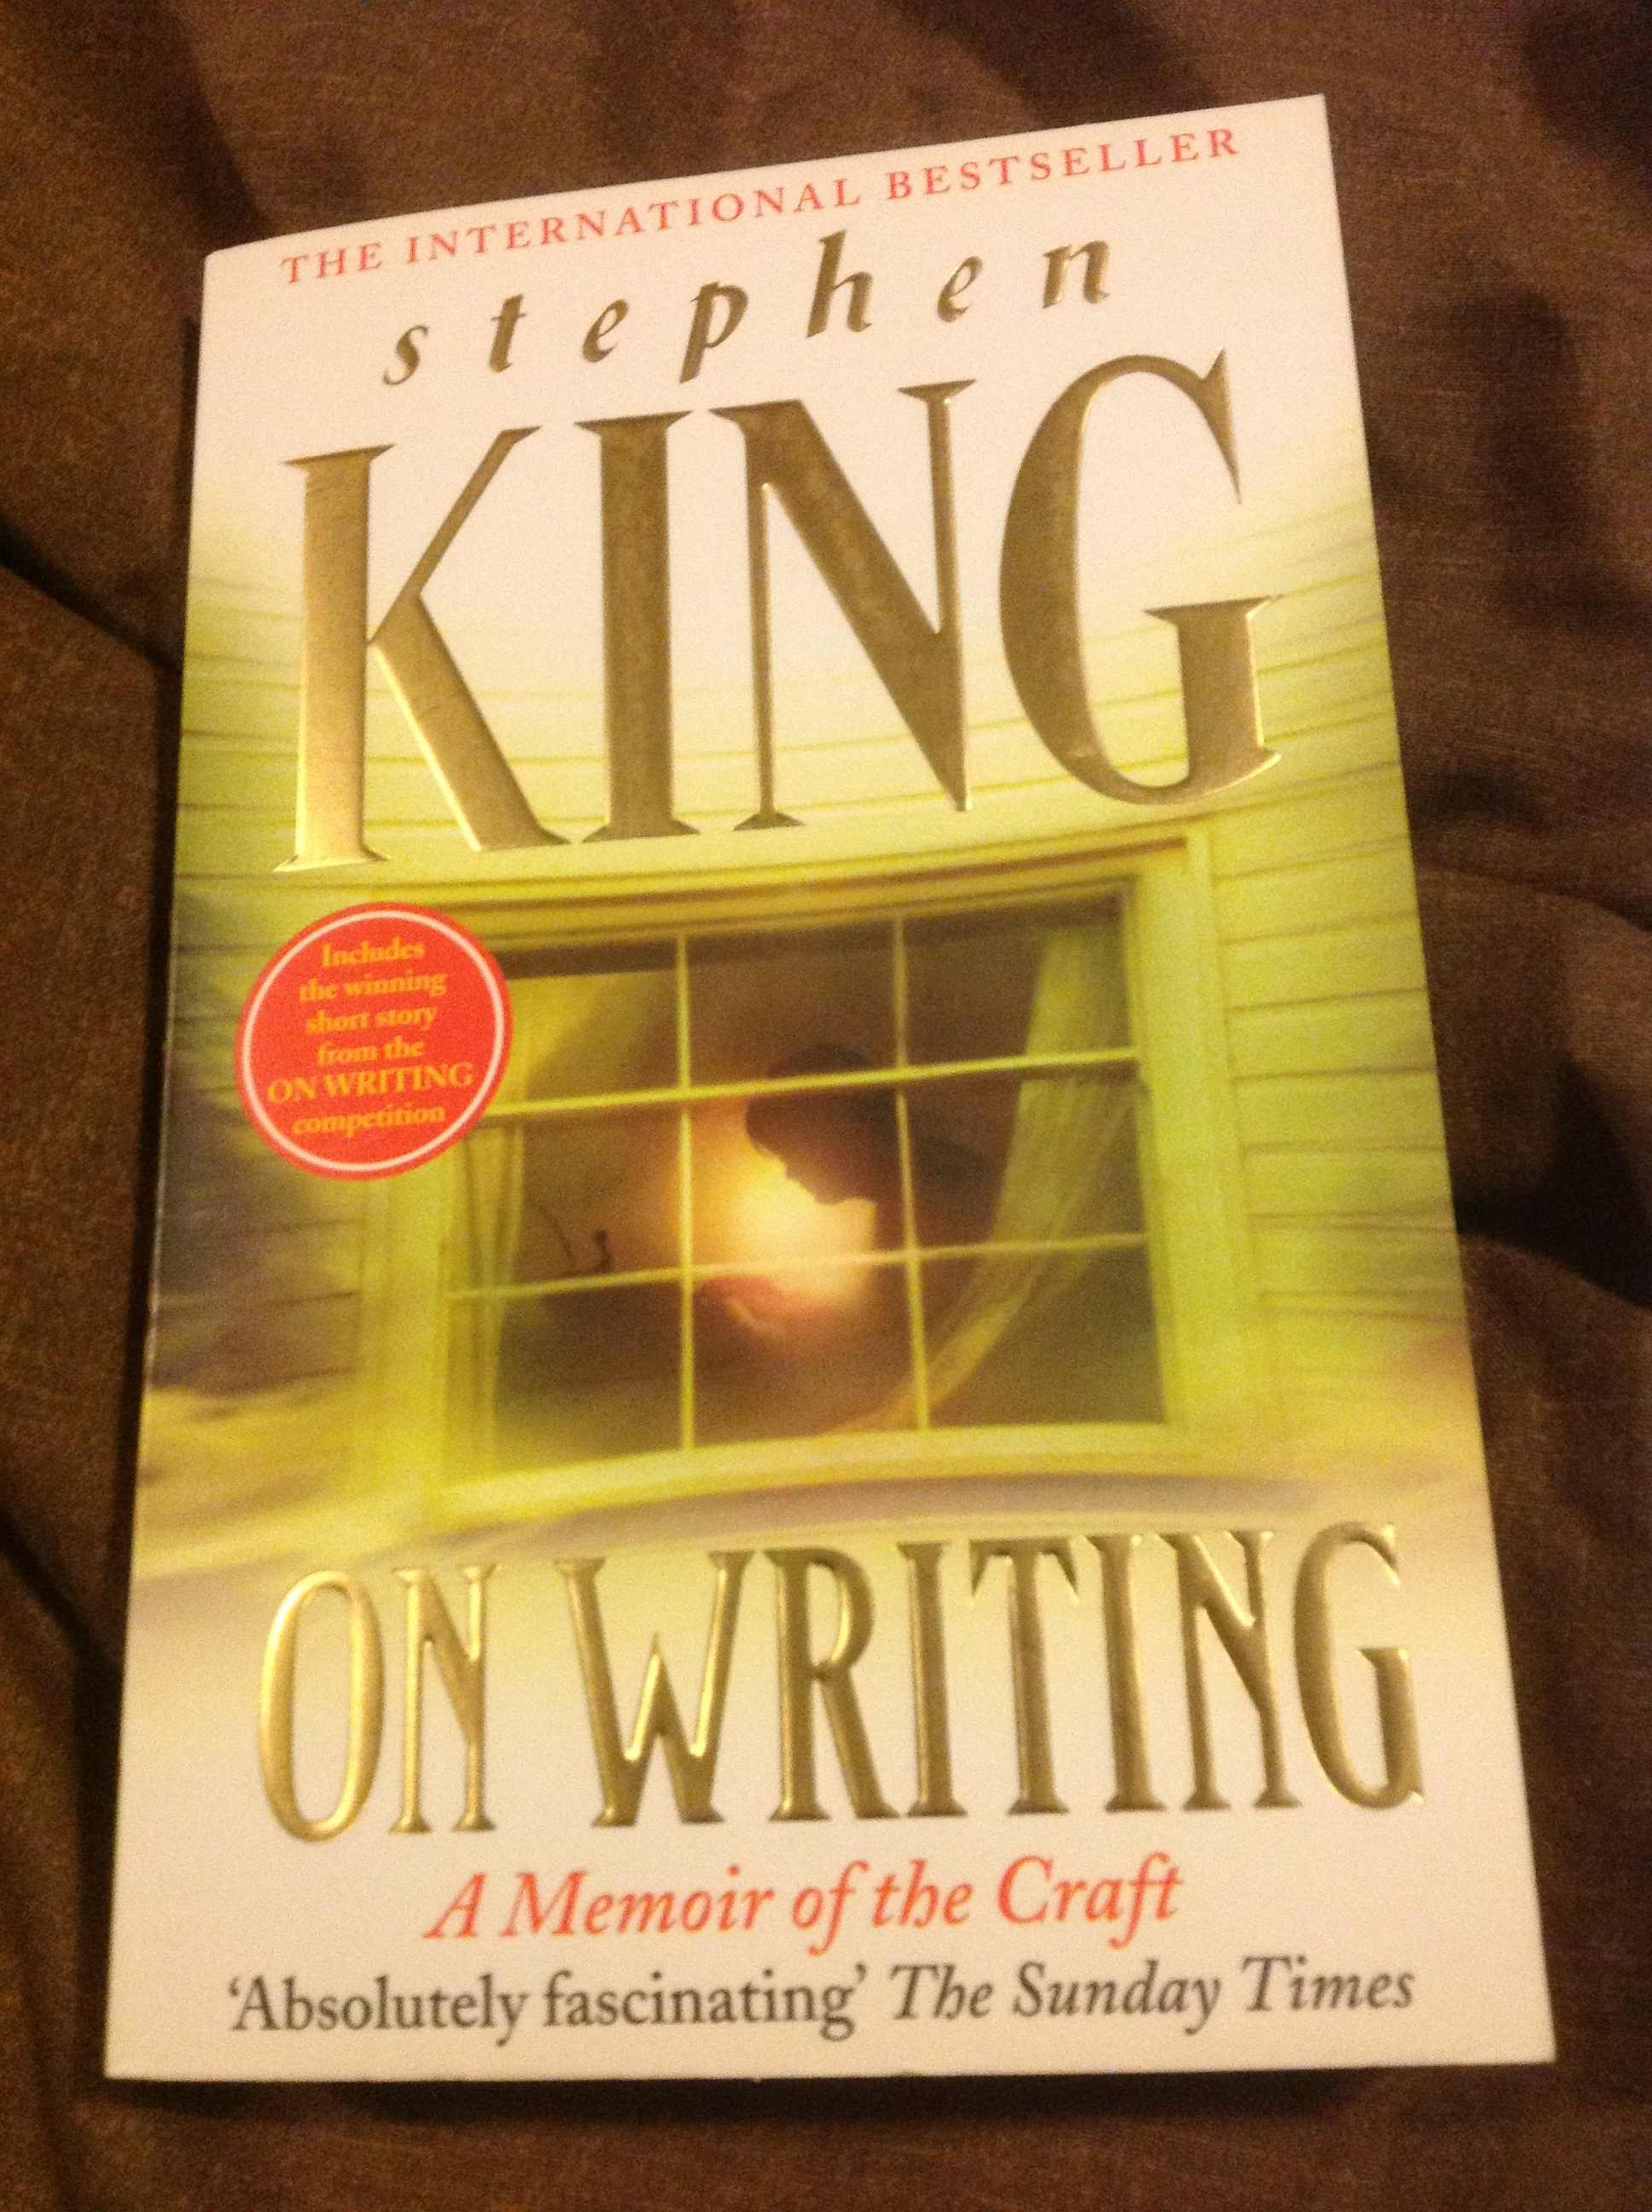 stephen kings writing style and method Stephen king's personal experience and views on writing have defined his works of fiction his works, and his writing practices and methods, are reactionary to both the changing landscape of the literary field around the length of his career and also a tumultuous personal life, saddled with substance addiction and, later in life, a near fatal accident.